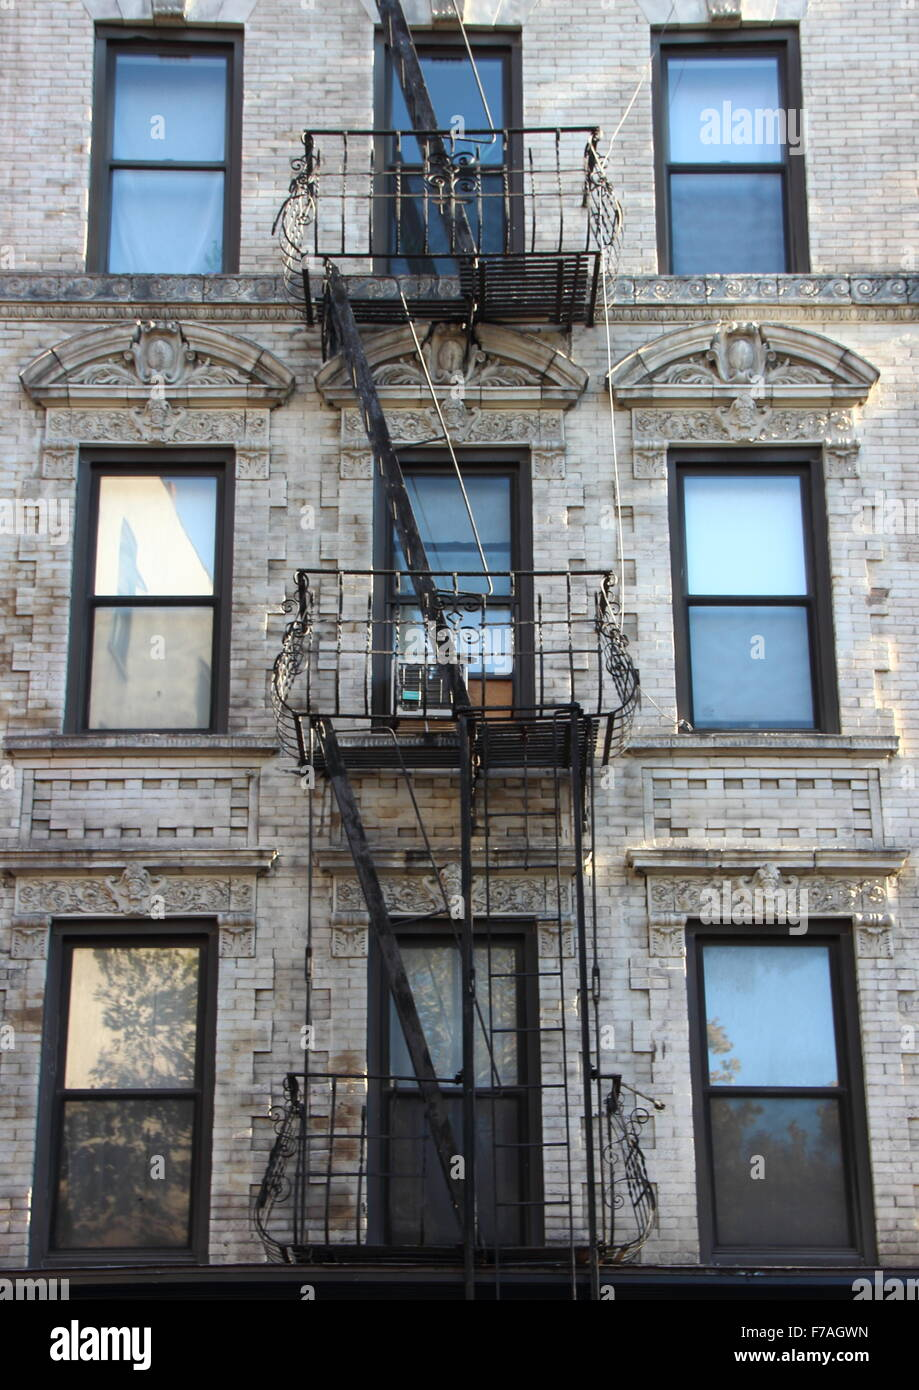 Apartment Building Fire Escape Ladder fire escape steel ladder on white apartment building facade in new